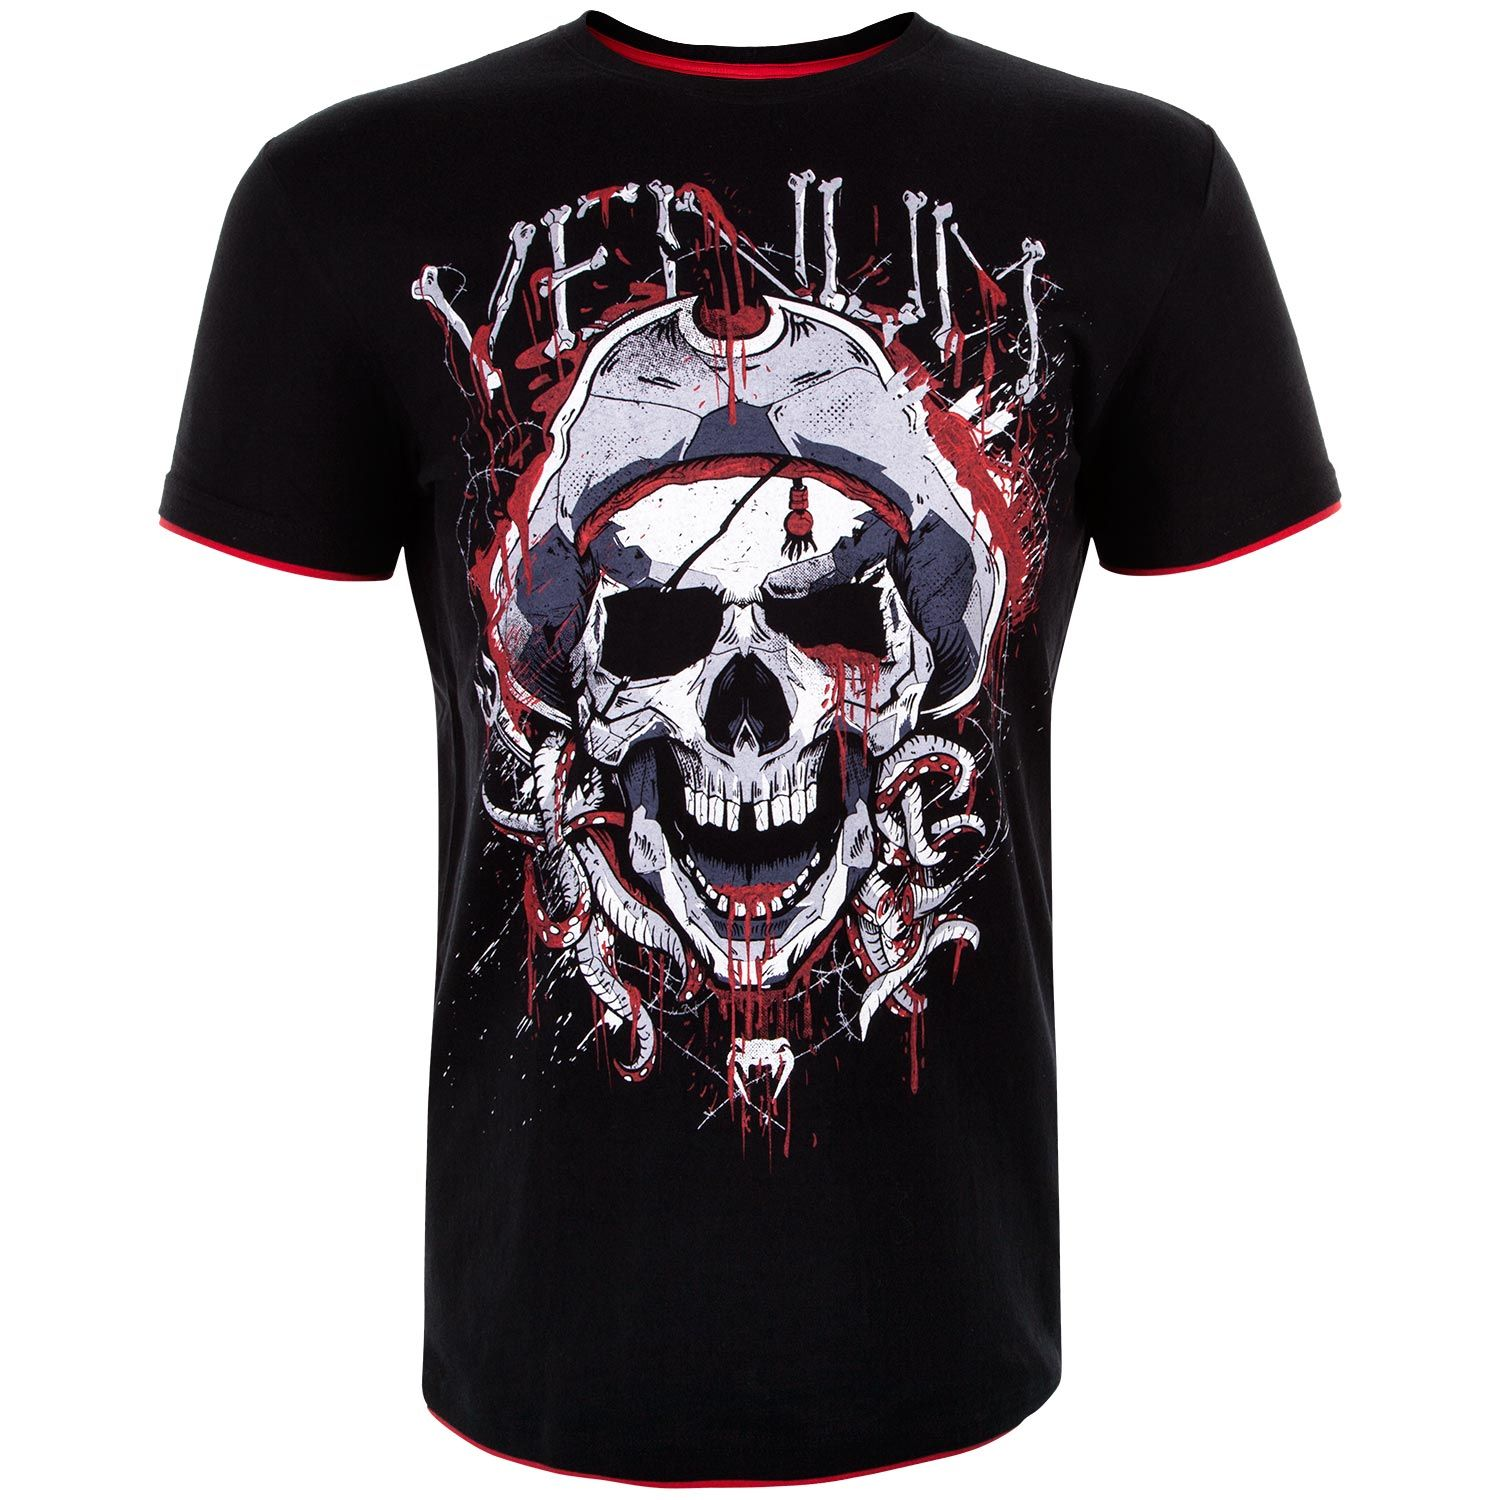 Venum Pirate 3.0 T-shirt - Black/Red